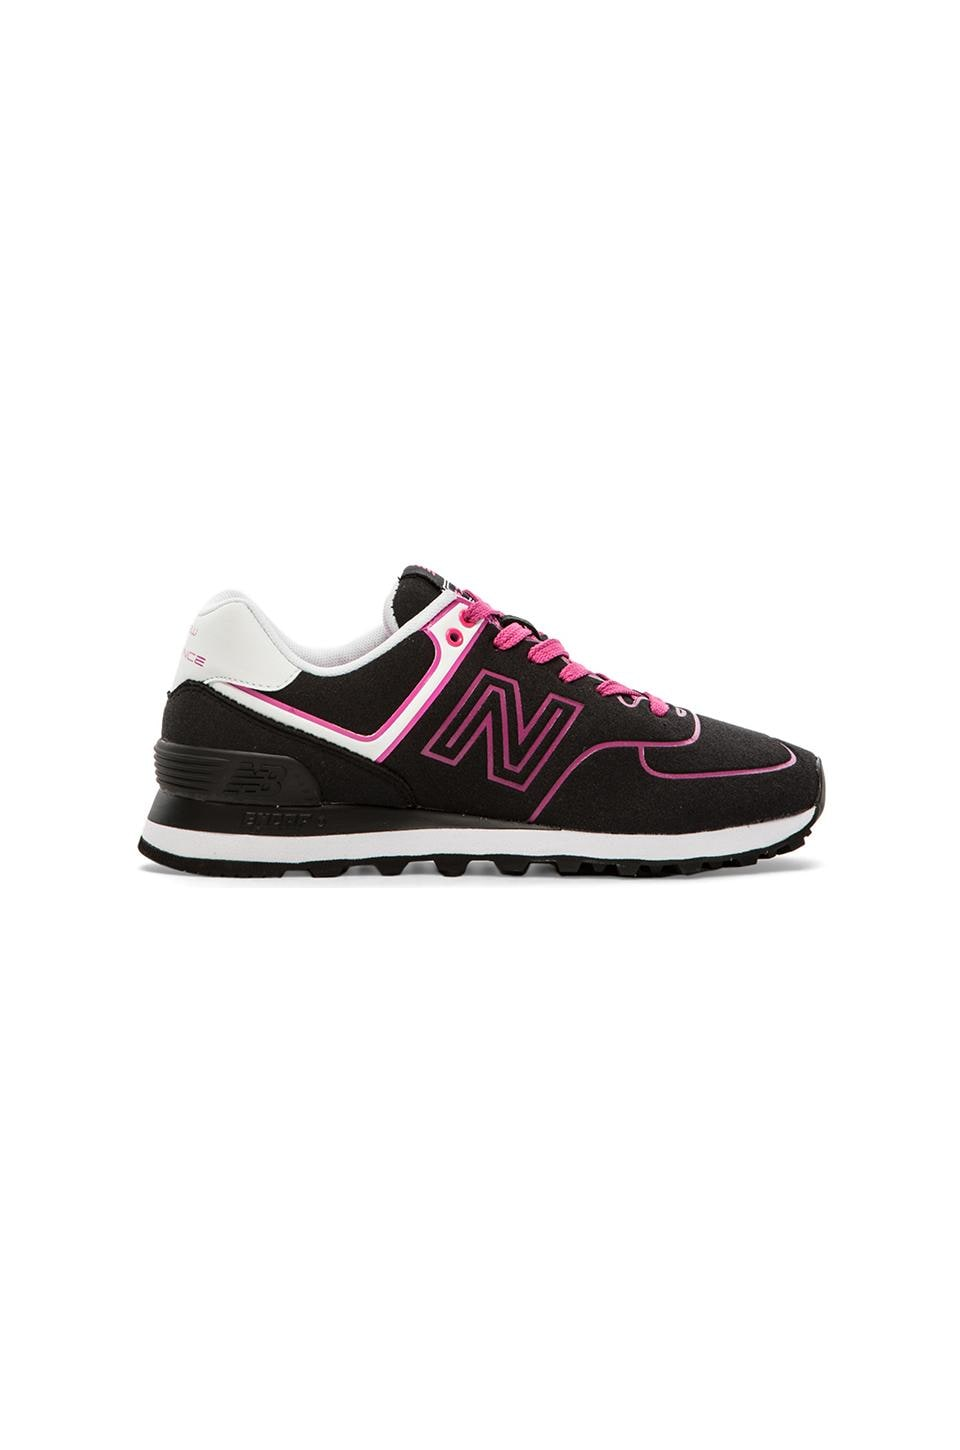 New Balance Neon Collection in Black & Pink